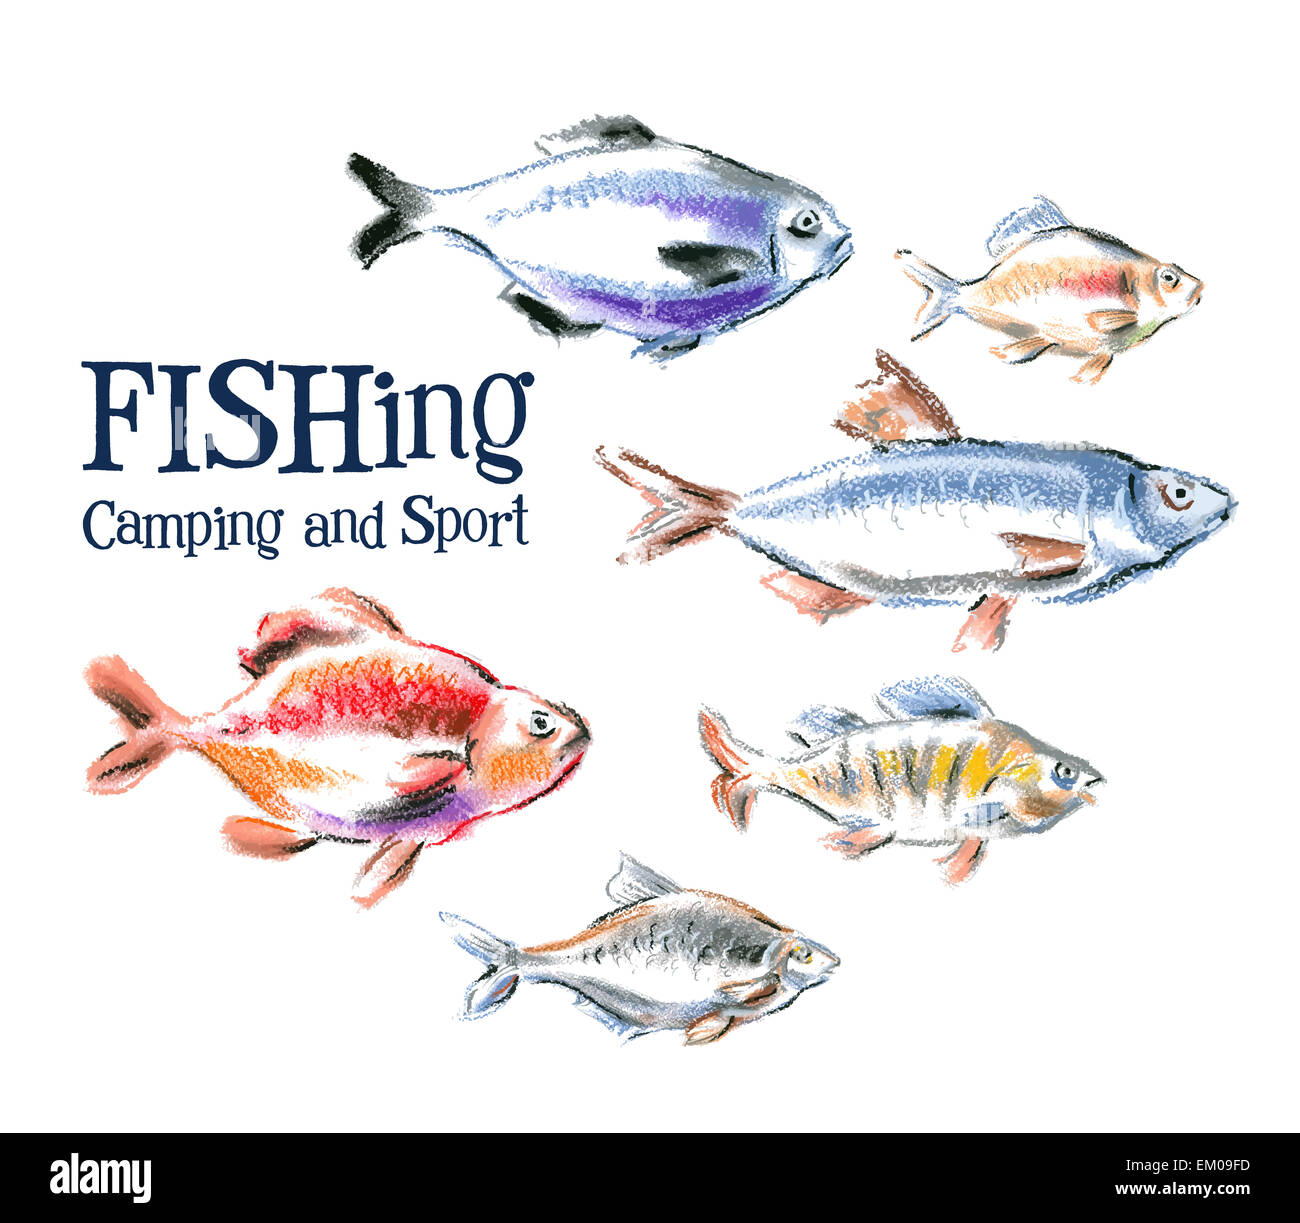 Fishing Vector Logo Design Template Stockfotos & Fishing Vector Logo ...